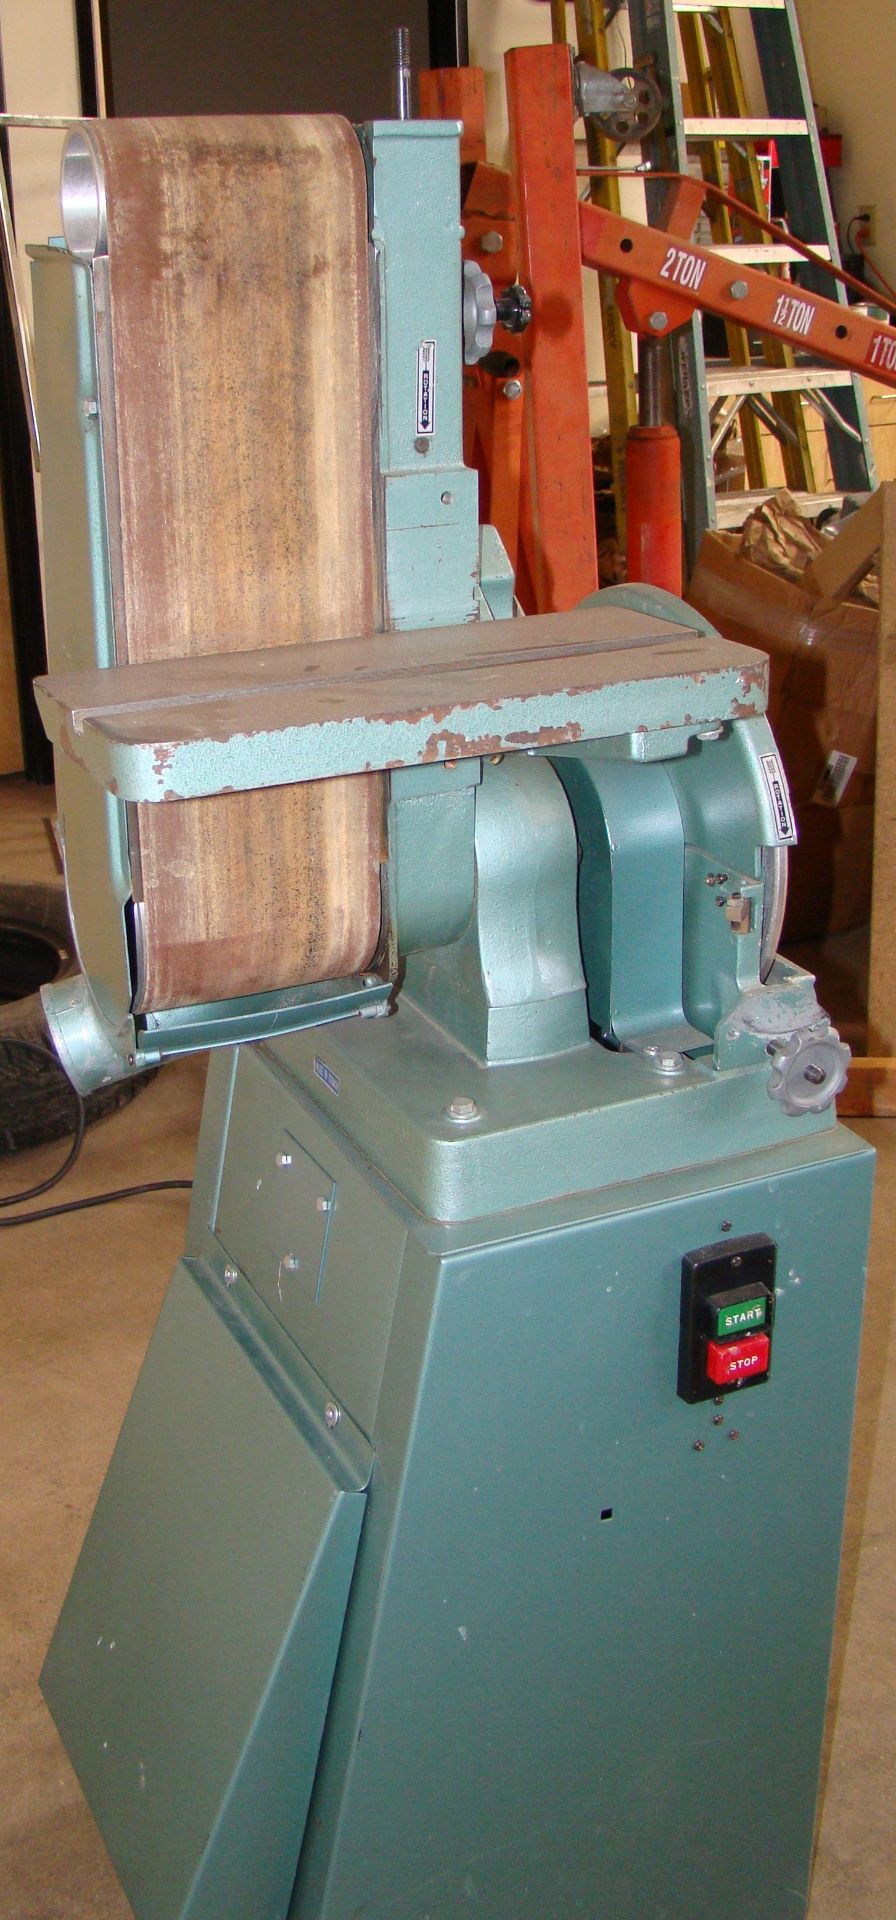 "Lot 16 - Wilton 6"" x 48"" Belt 12"" Disc Sander model 3Z855 220 Volt 1PH"